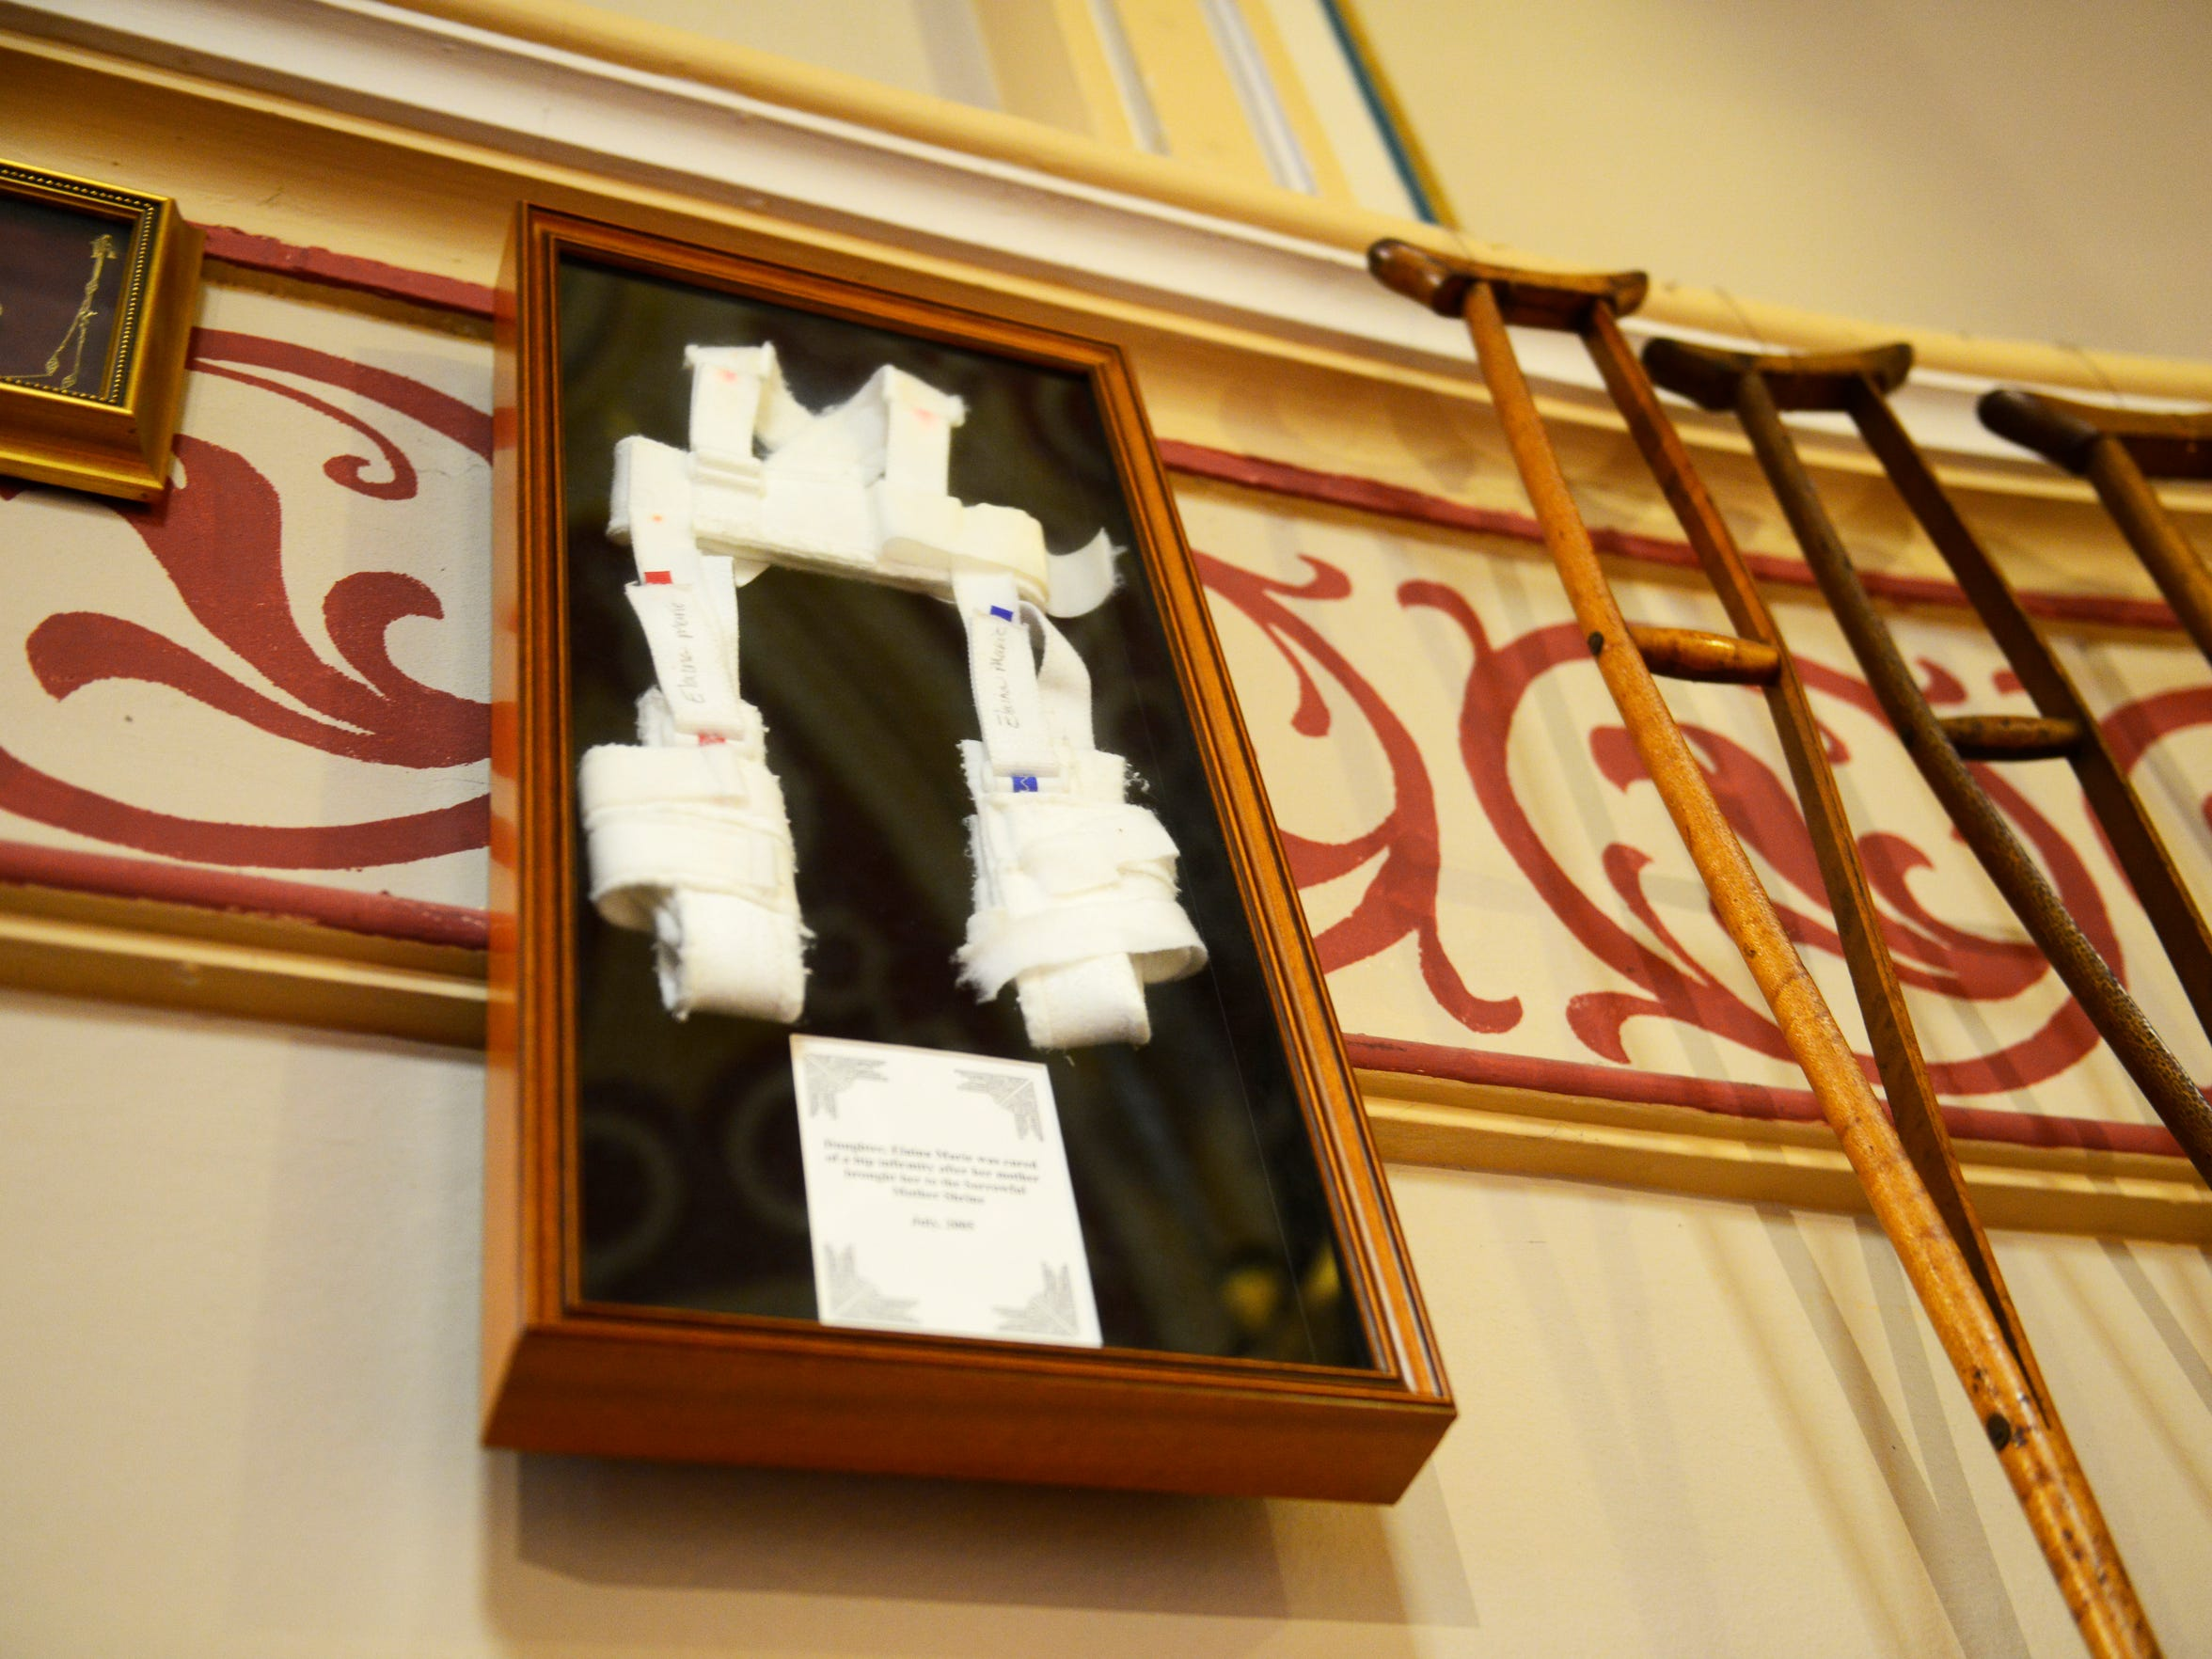 One of many miracles attributed to the Sorrowful Mother Shrine, a young girl's bandage hangs on the wall, left after she prayed to the Sorrowful Mother, was healed and became able to walk.